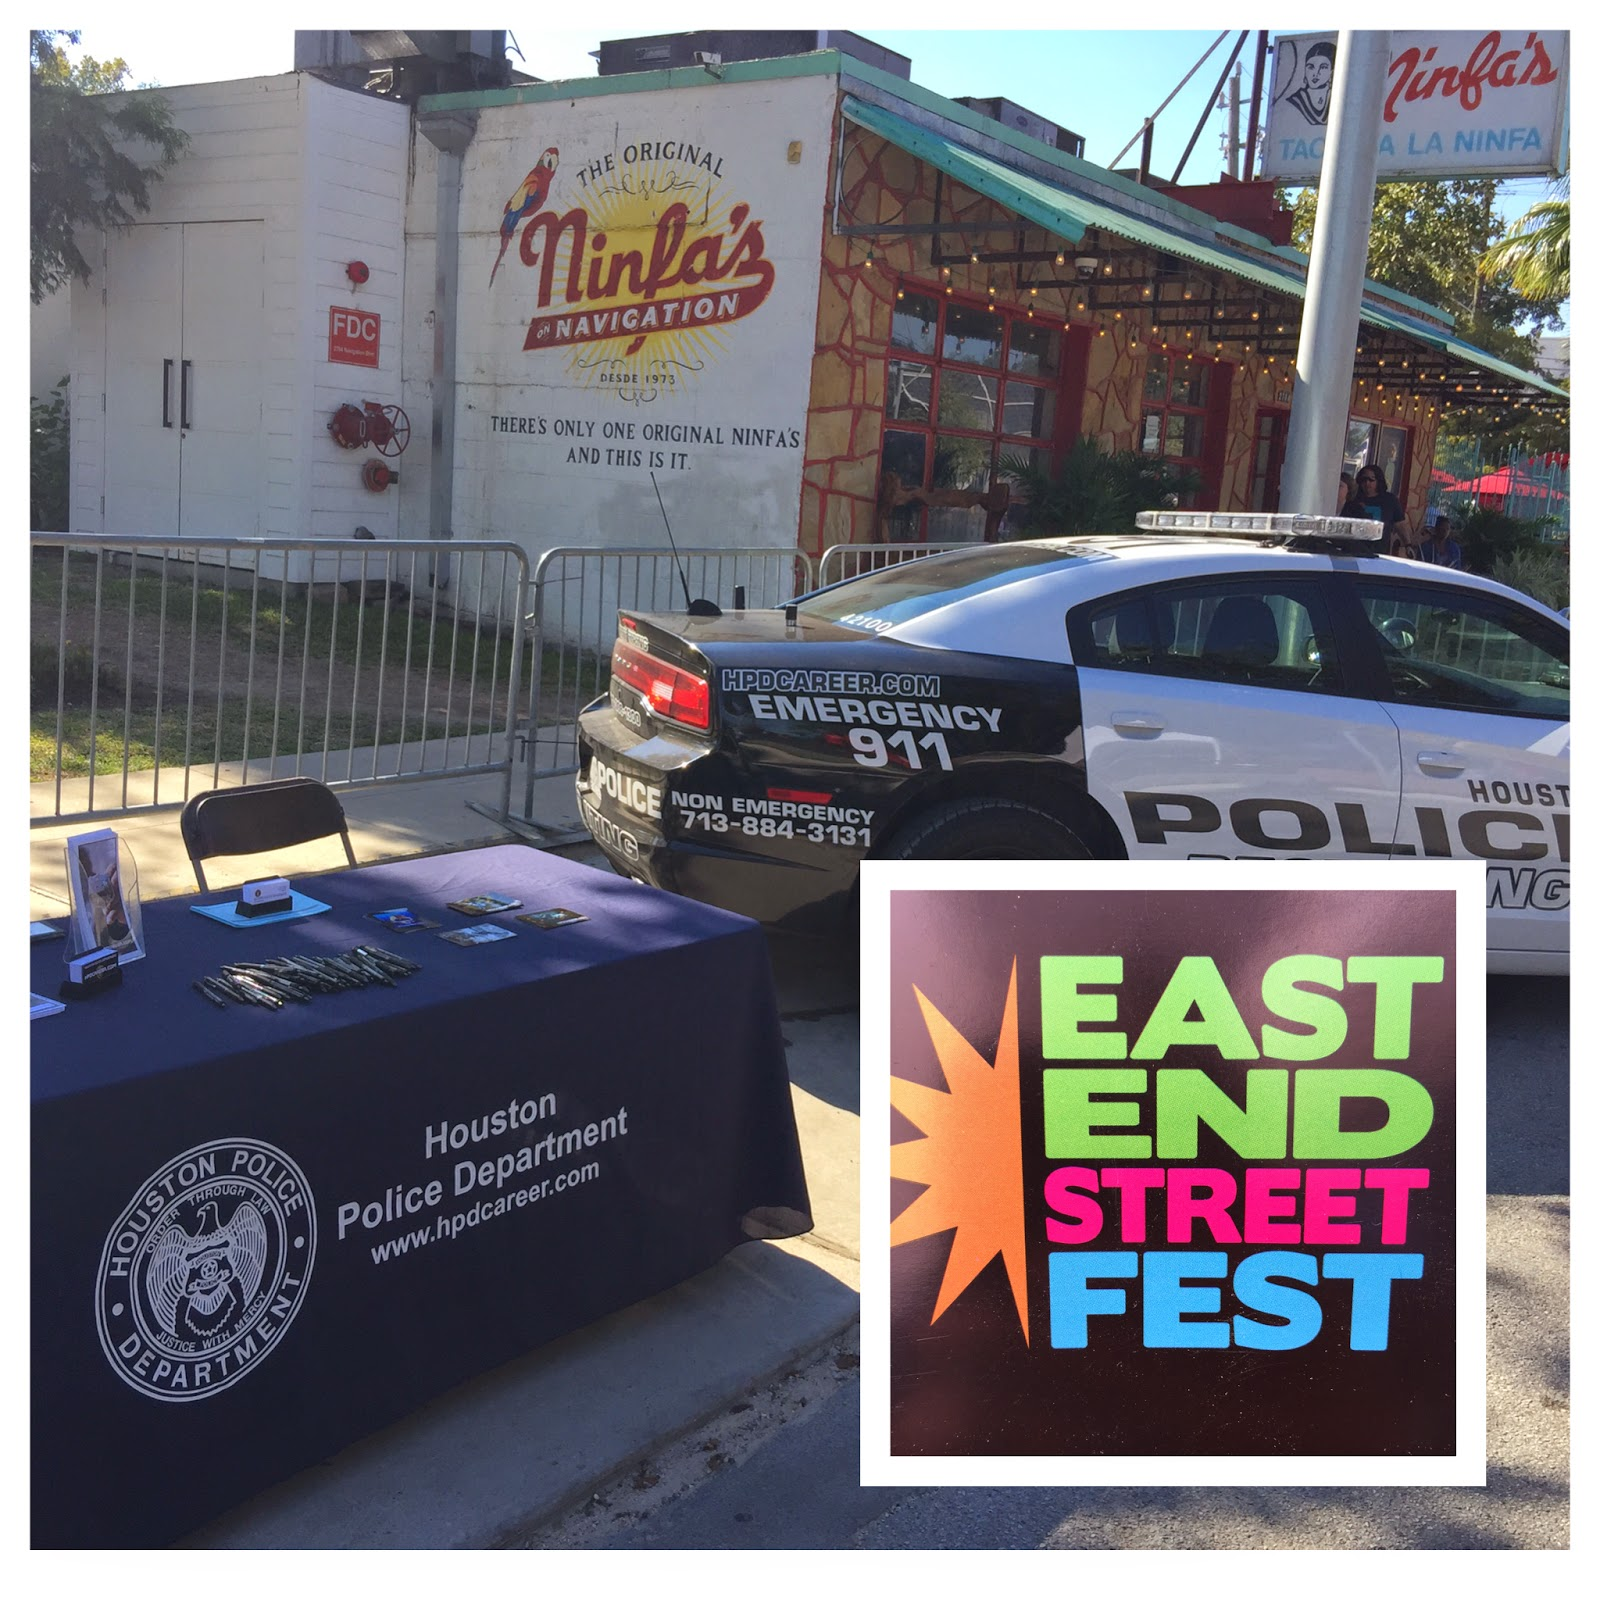 houston police department  hpd recruiting at the east end festival